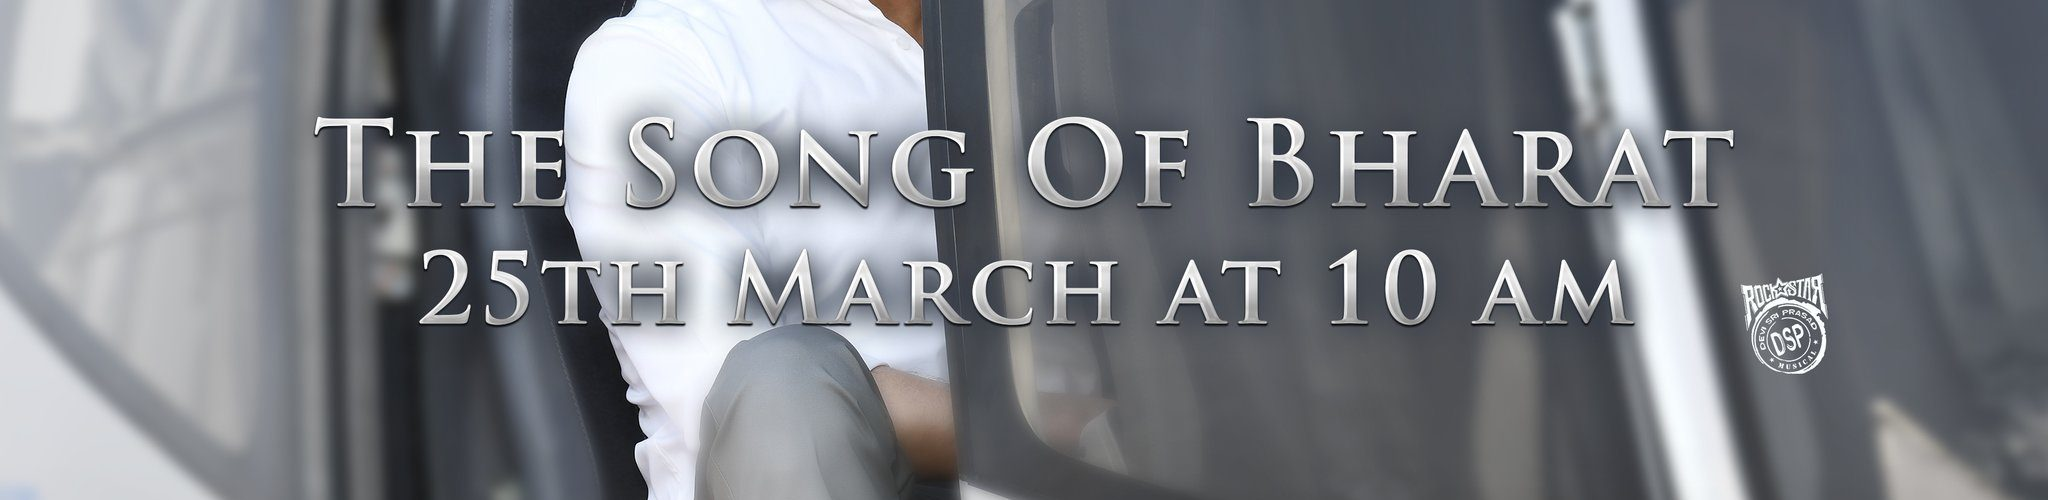 Mahesh Babu starrer 'Bharat Ane Nenu' to come out with first song on this date